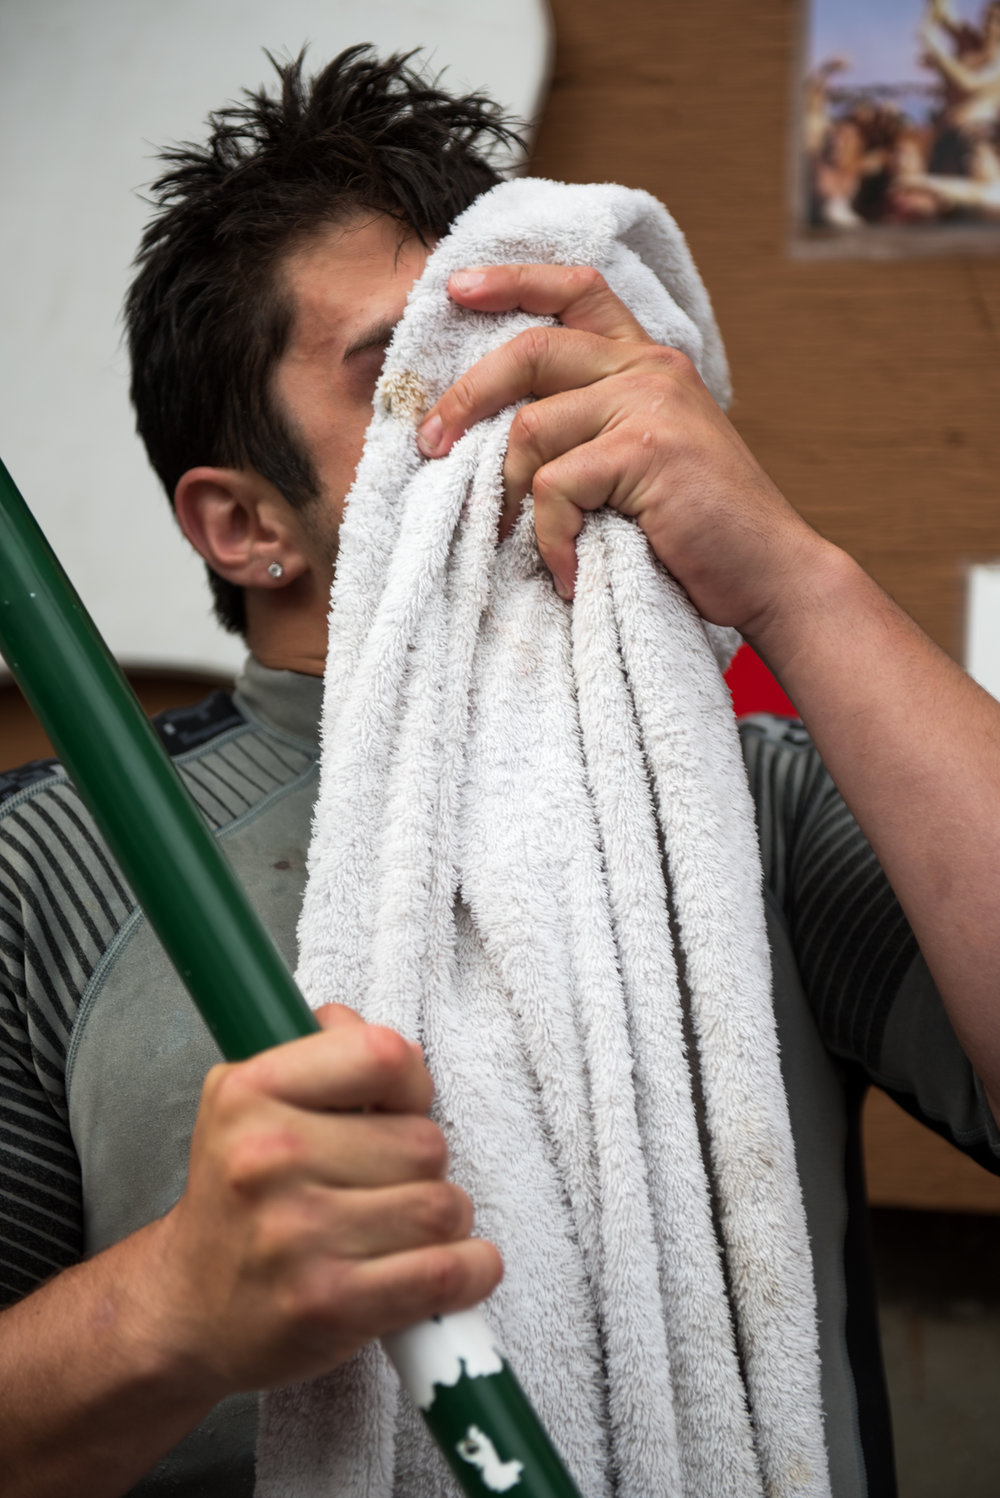 Gloucester, MA - 6/25/17 - Jack Wagner toweling off his face after his Sunday greasy pole event win during the St. Peter's Fiesta in Gloucester, Mass. on Sunday, June 25, 2017. Each year a select group of men, some novices, others seasoned champions, compete against each other to see who can run across a telephone pole layered in grease and suspended over the sea. This year after one full round, Gloucester resident, Jake Wagner, grabbed the flag, claiming victory. (Nicholas Pfosi for The Boston Globe) Reporter: Billy Baker Topic: 02greasypole(2)